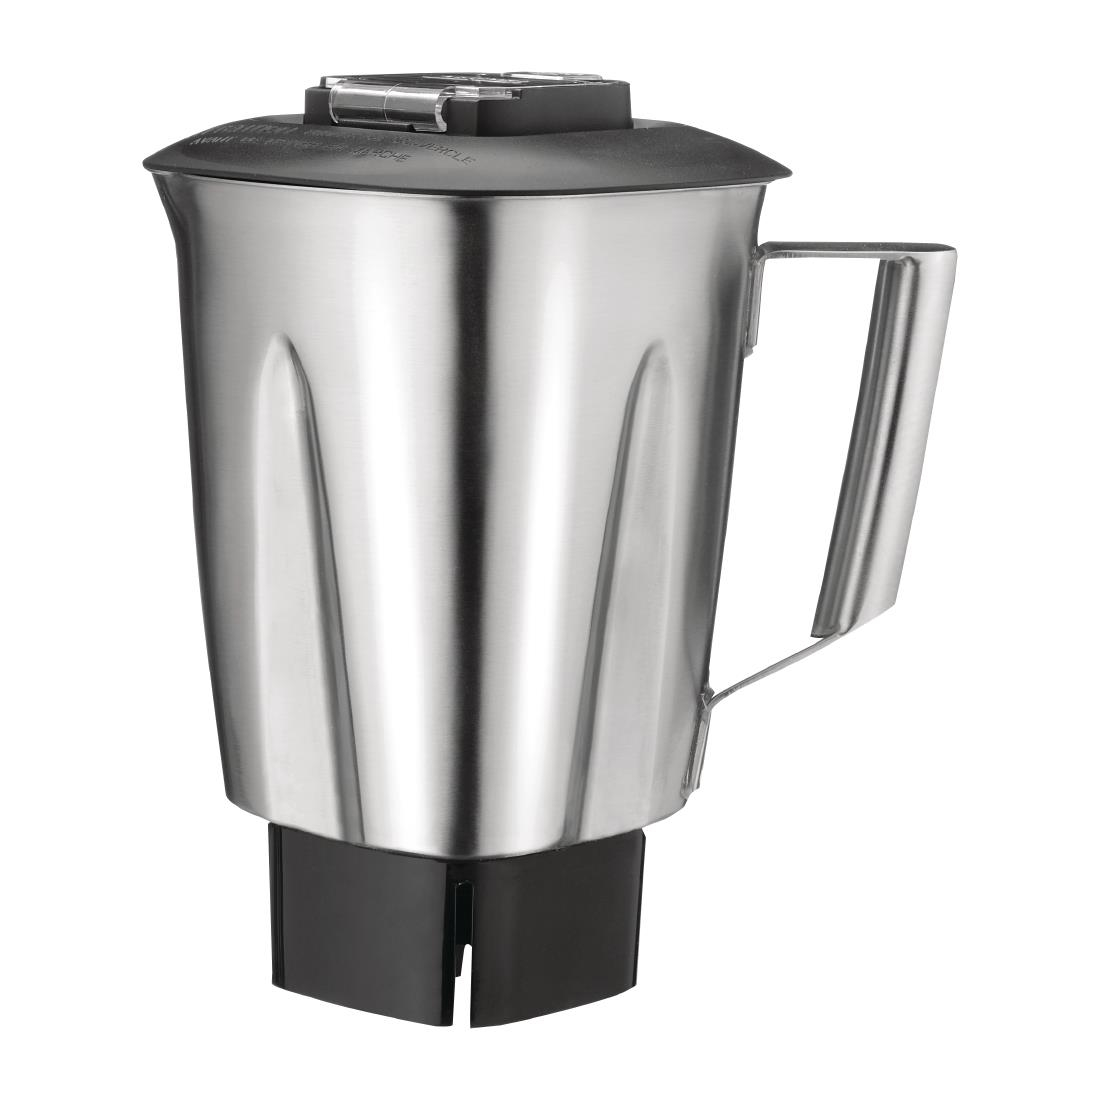 Waring 1.4Ltr Stainless Steel Blender Jar for BB300K Series